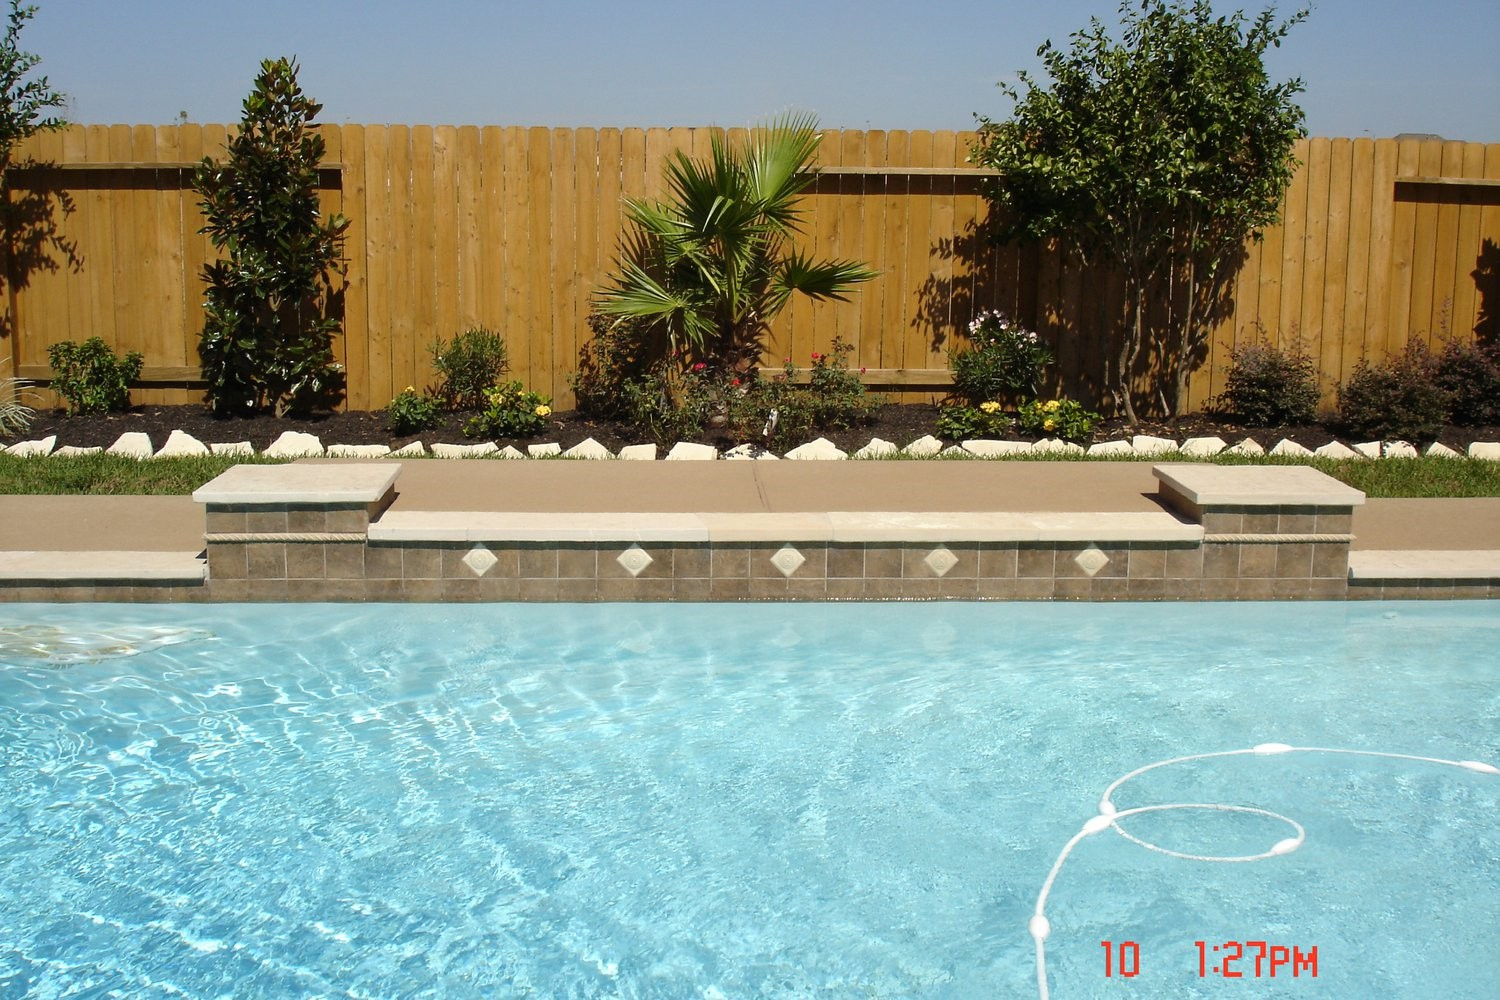 Swimming Pool Design Spring Tomball Katy Houston Cypress